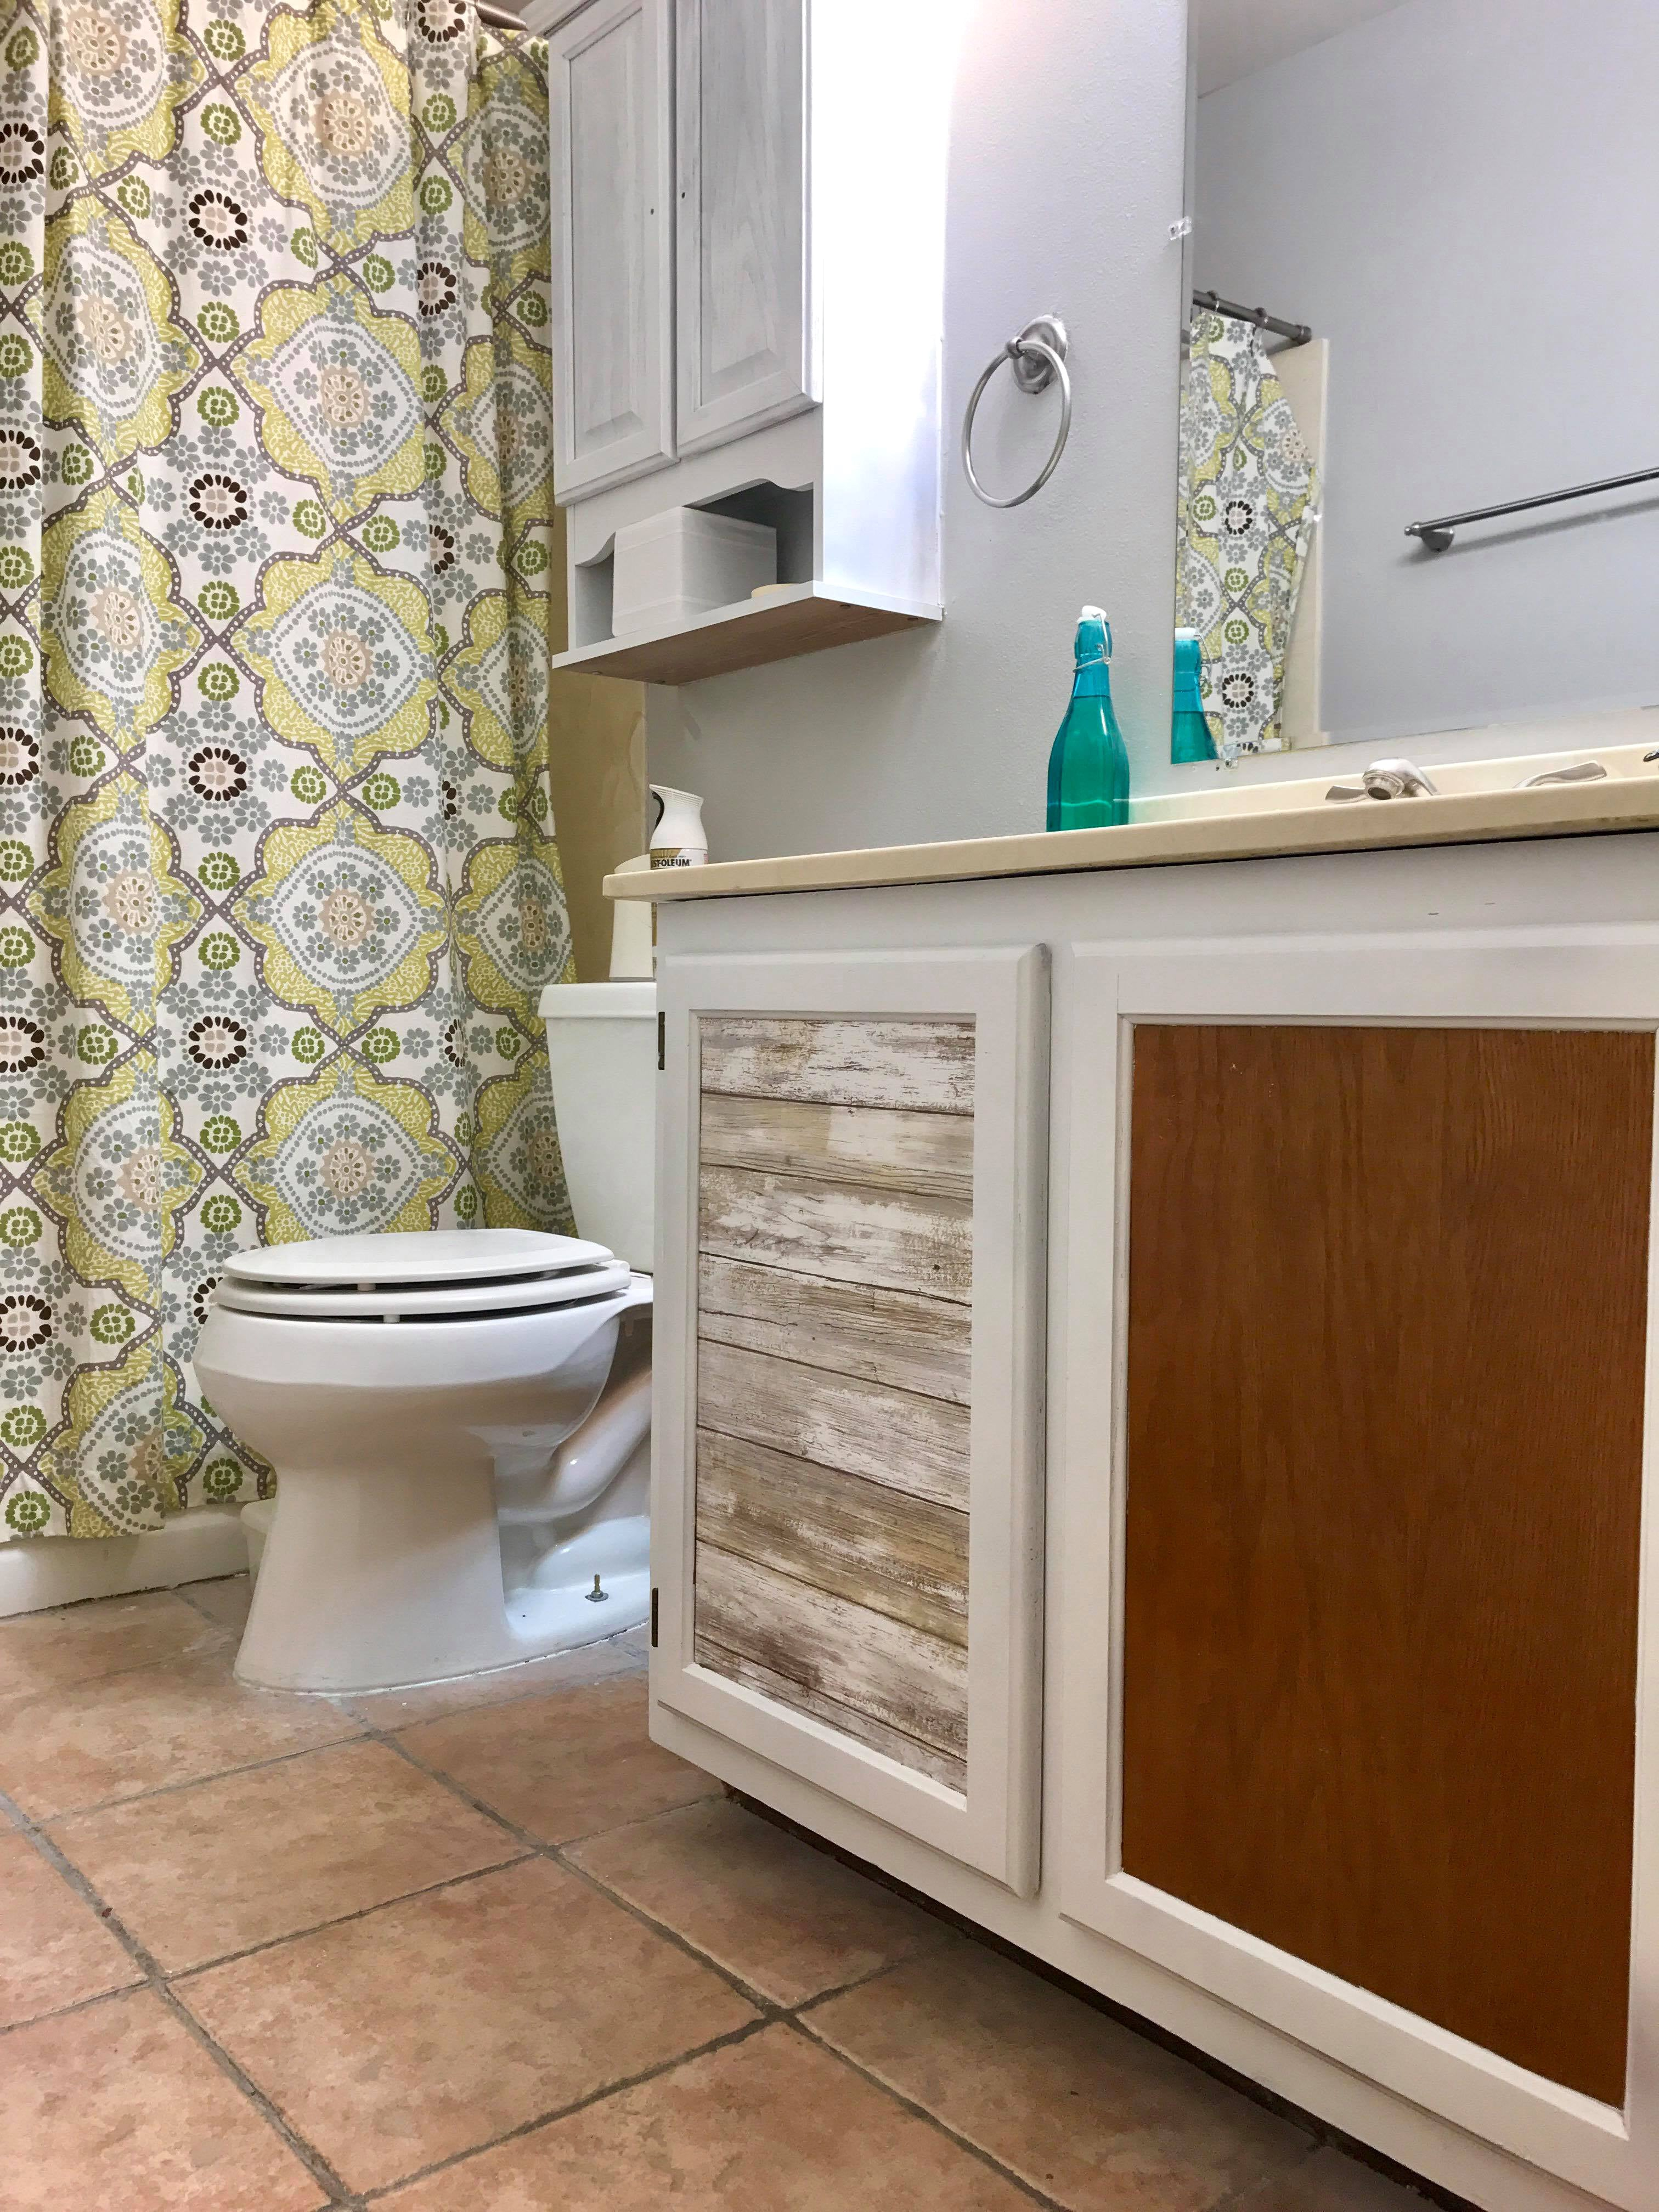 Bathroom Cabinet Update With Peel And Stick Wallpaper